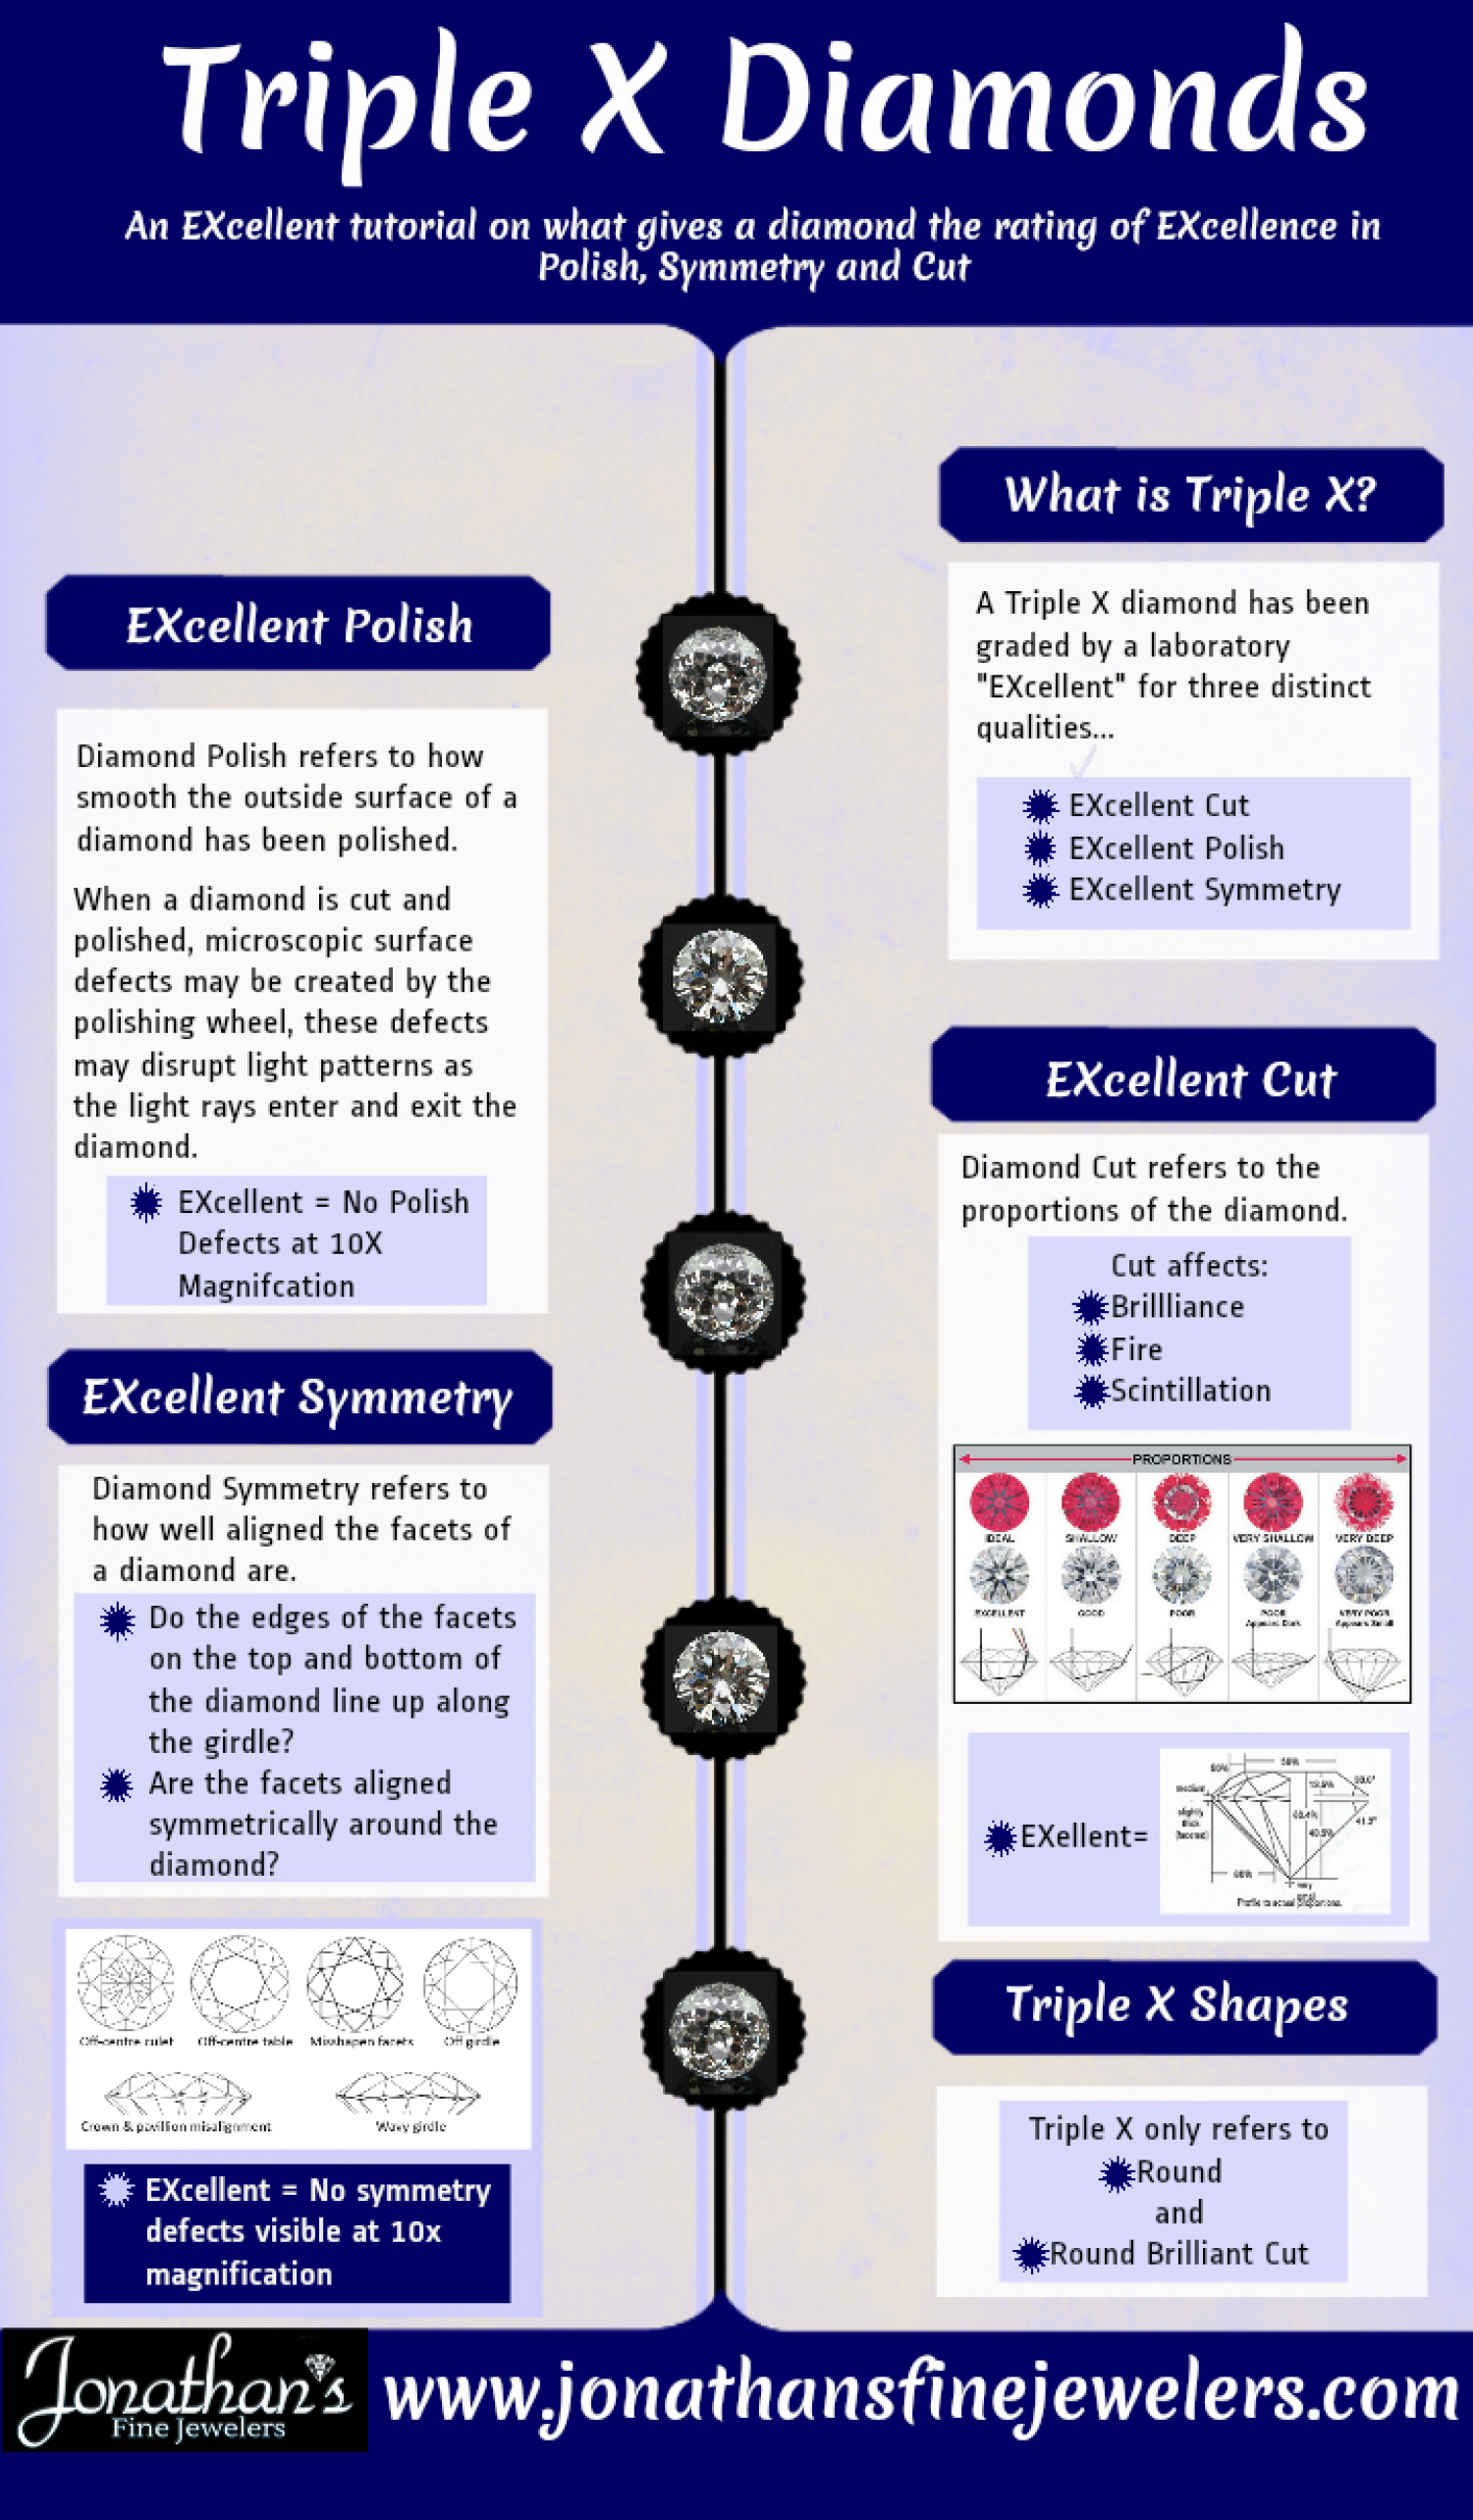 Triple X Diamonds - Are They Worth It? Infographic